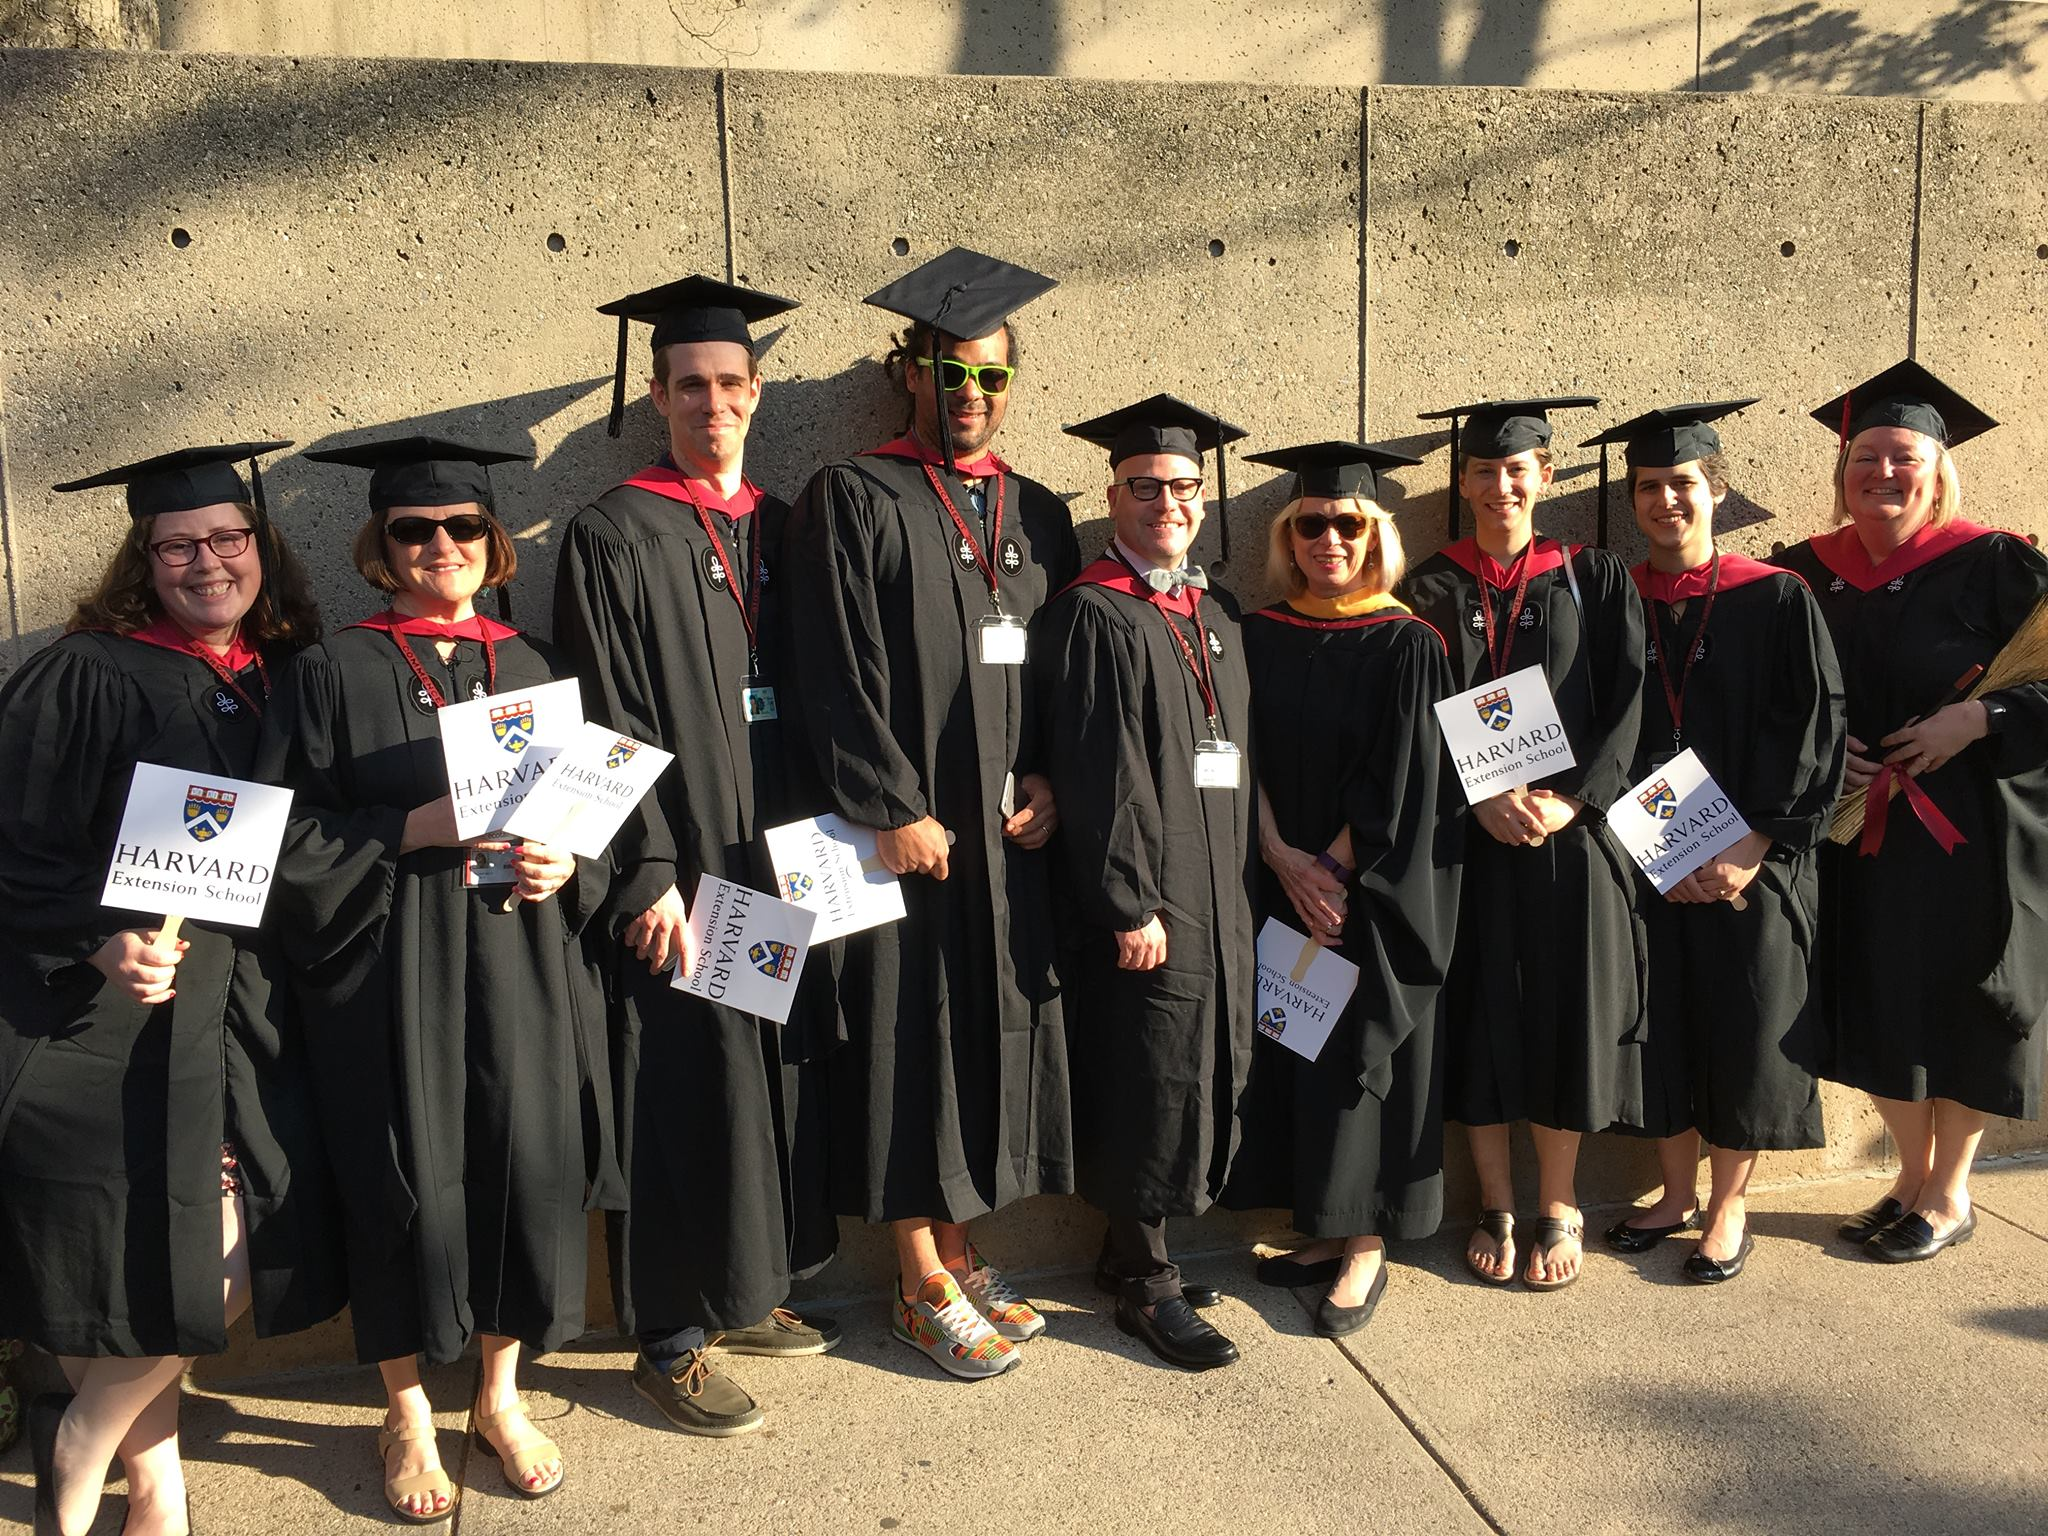 Gowns, fans, mortarboards and other tokens of achievement. 2016 Museum Studies Master's graduates with program director Kathy Jones. Photo by Kathy Jones.